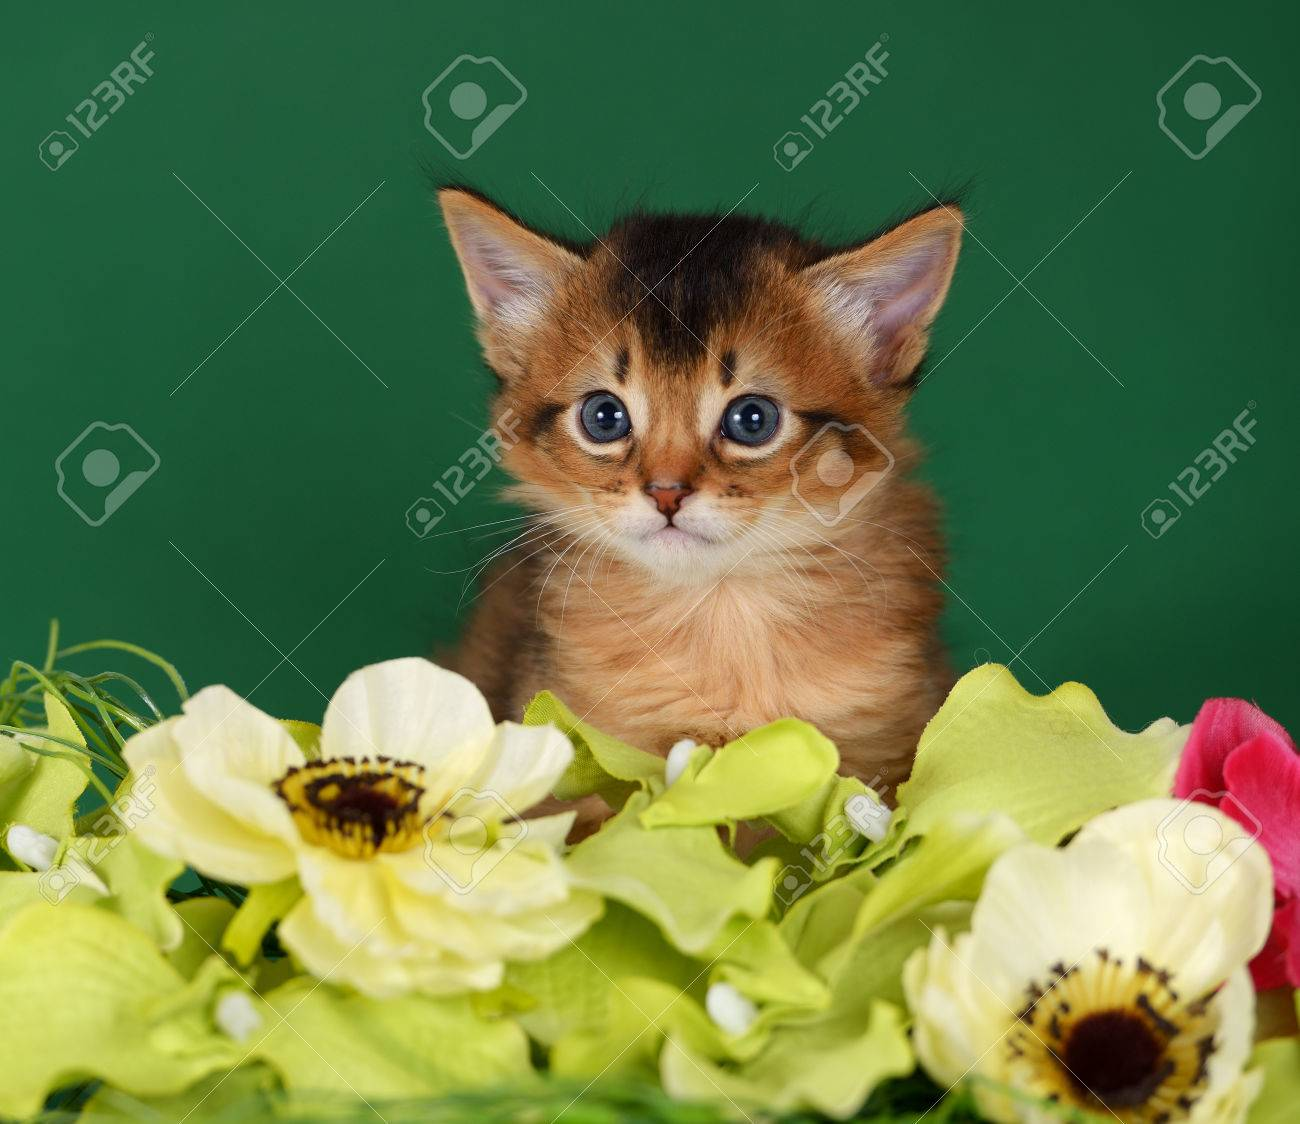 Cute Somali Kitten On The Green Background With Flowers Stock Photo ...